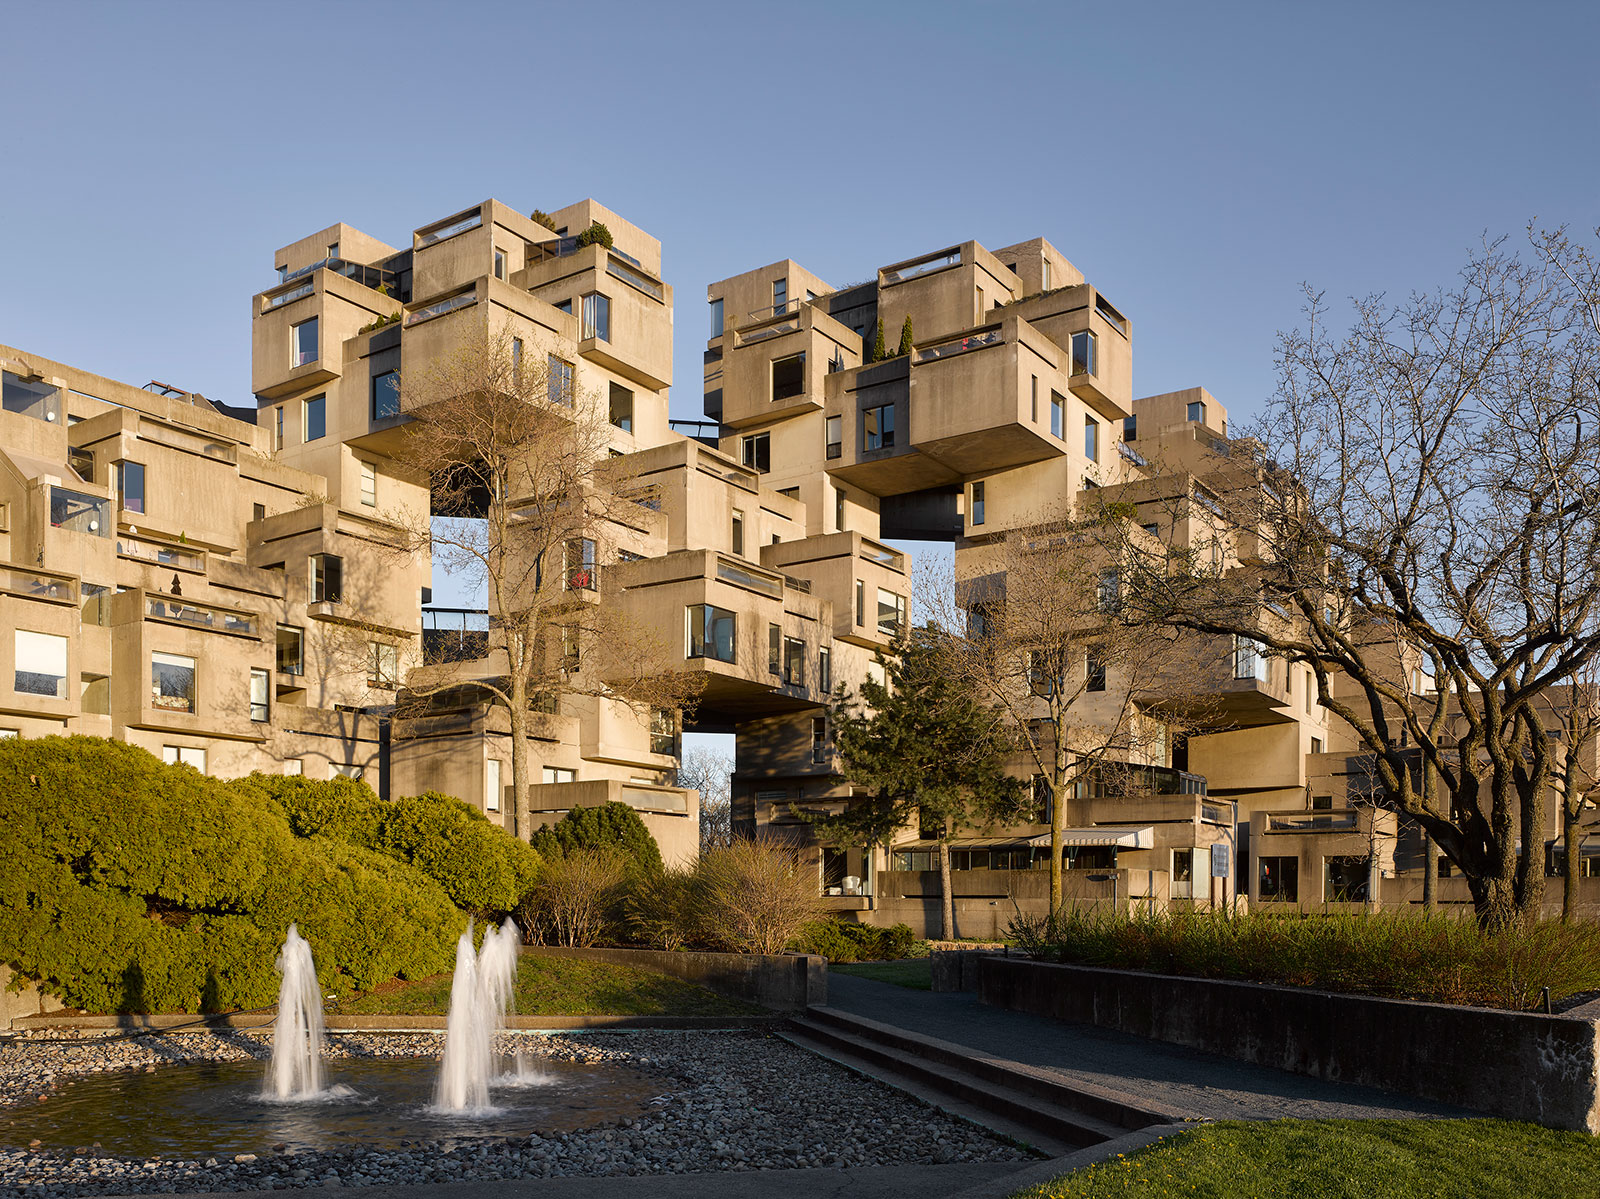 The futuristic form of Habitat 67 comprises stacked concrete cubes – each dwelling has its own outdoor space and unique view